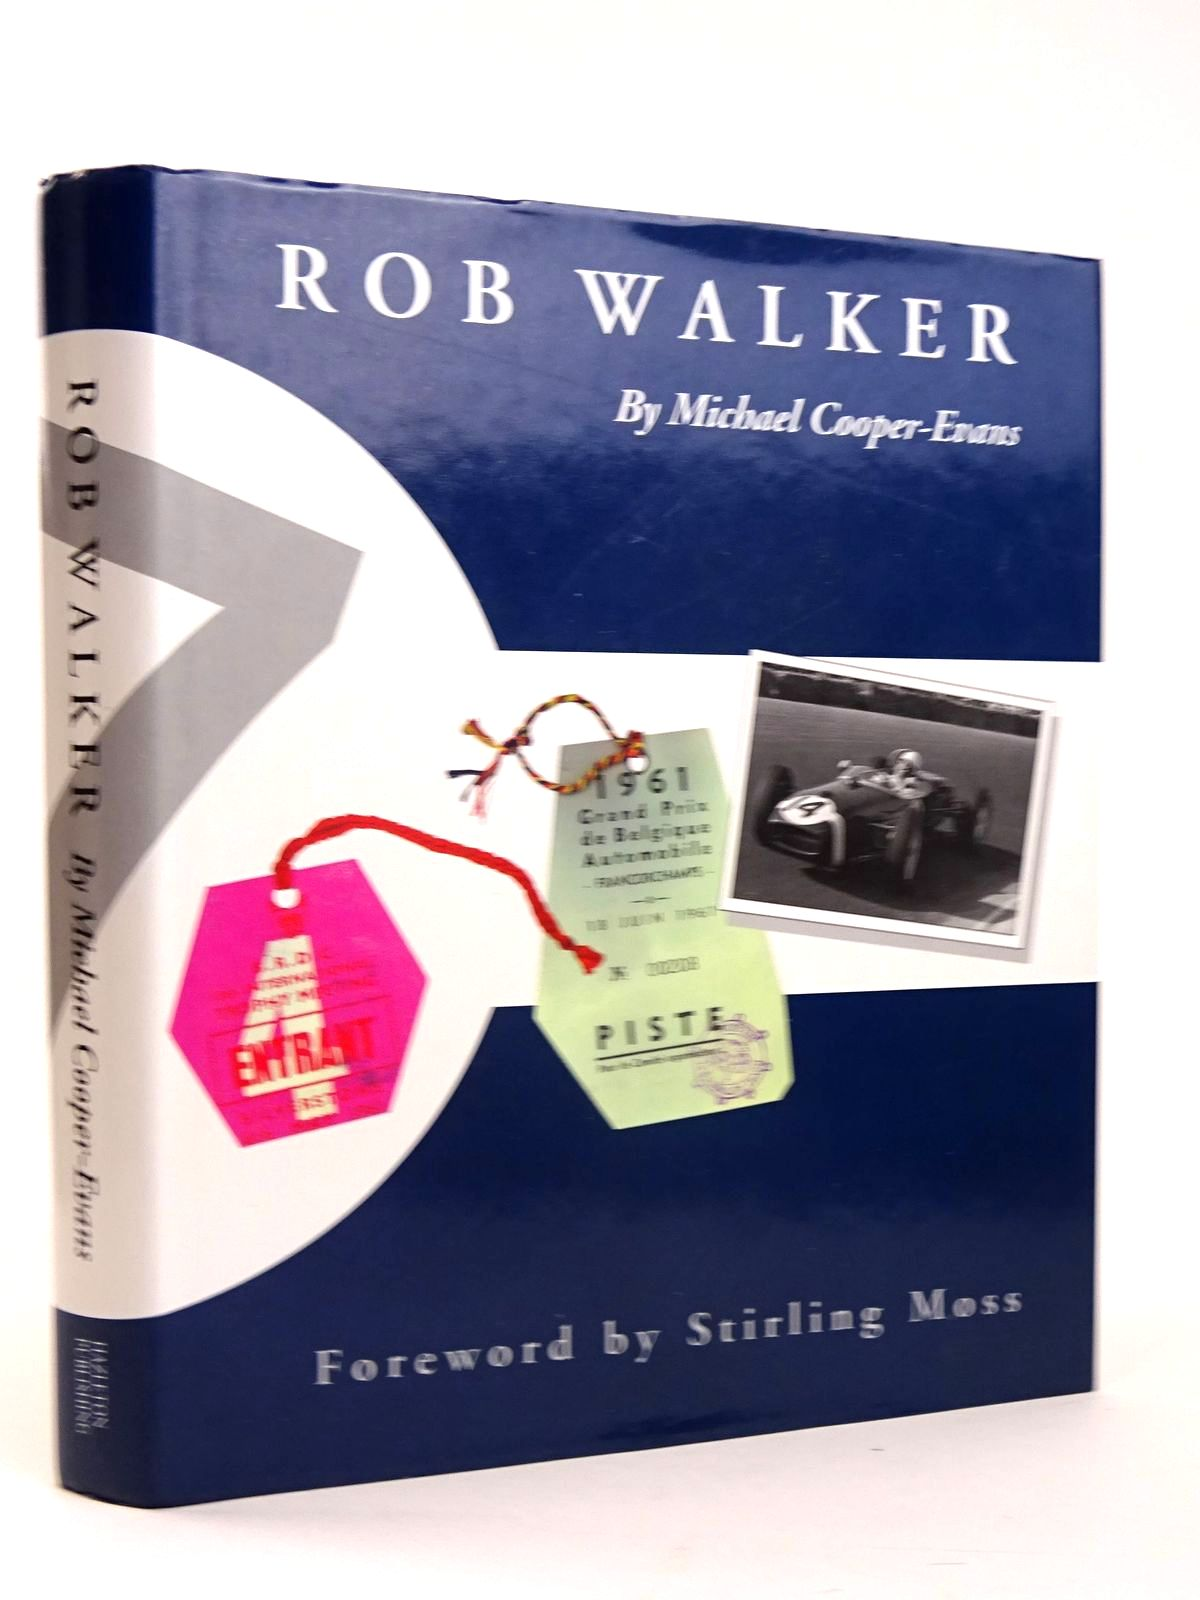 Photo of ROB WALKER written by Cooper-Evans, Michael Moss, Stirling published by Hazleton Publishing (STOCK CODE: 1818485)  for sale by Stella & Rose's Books